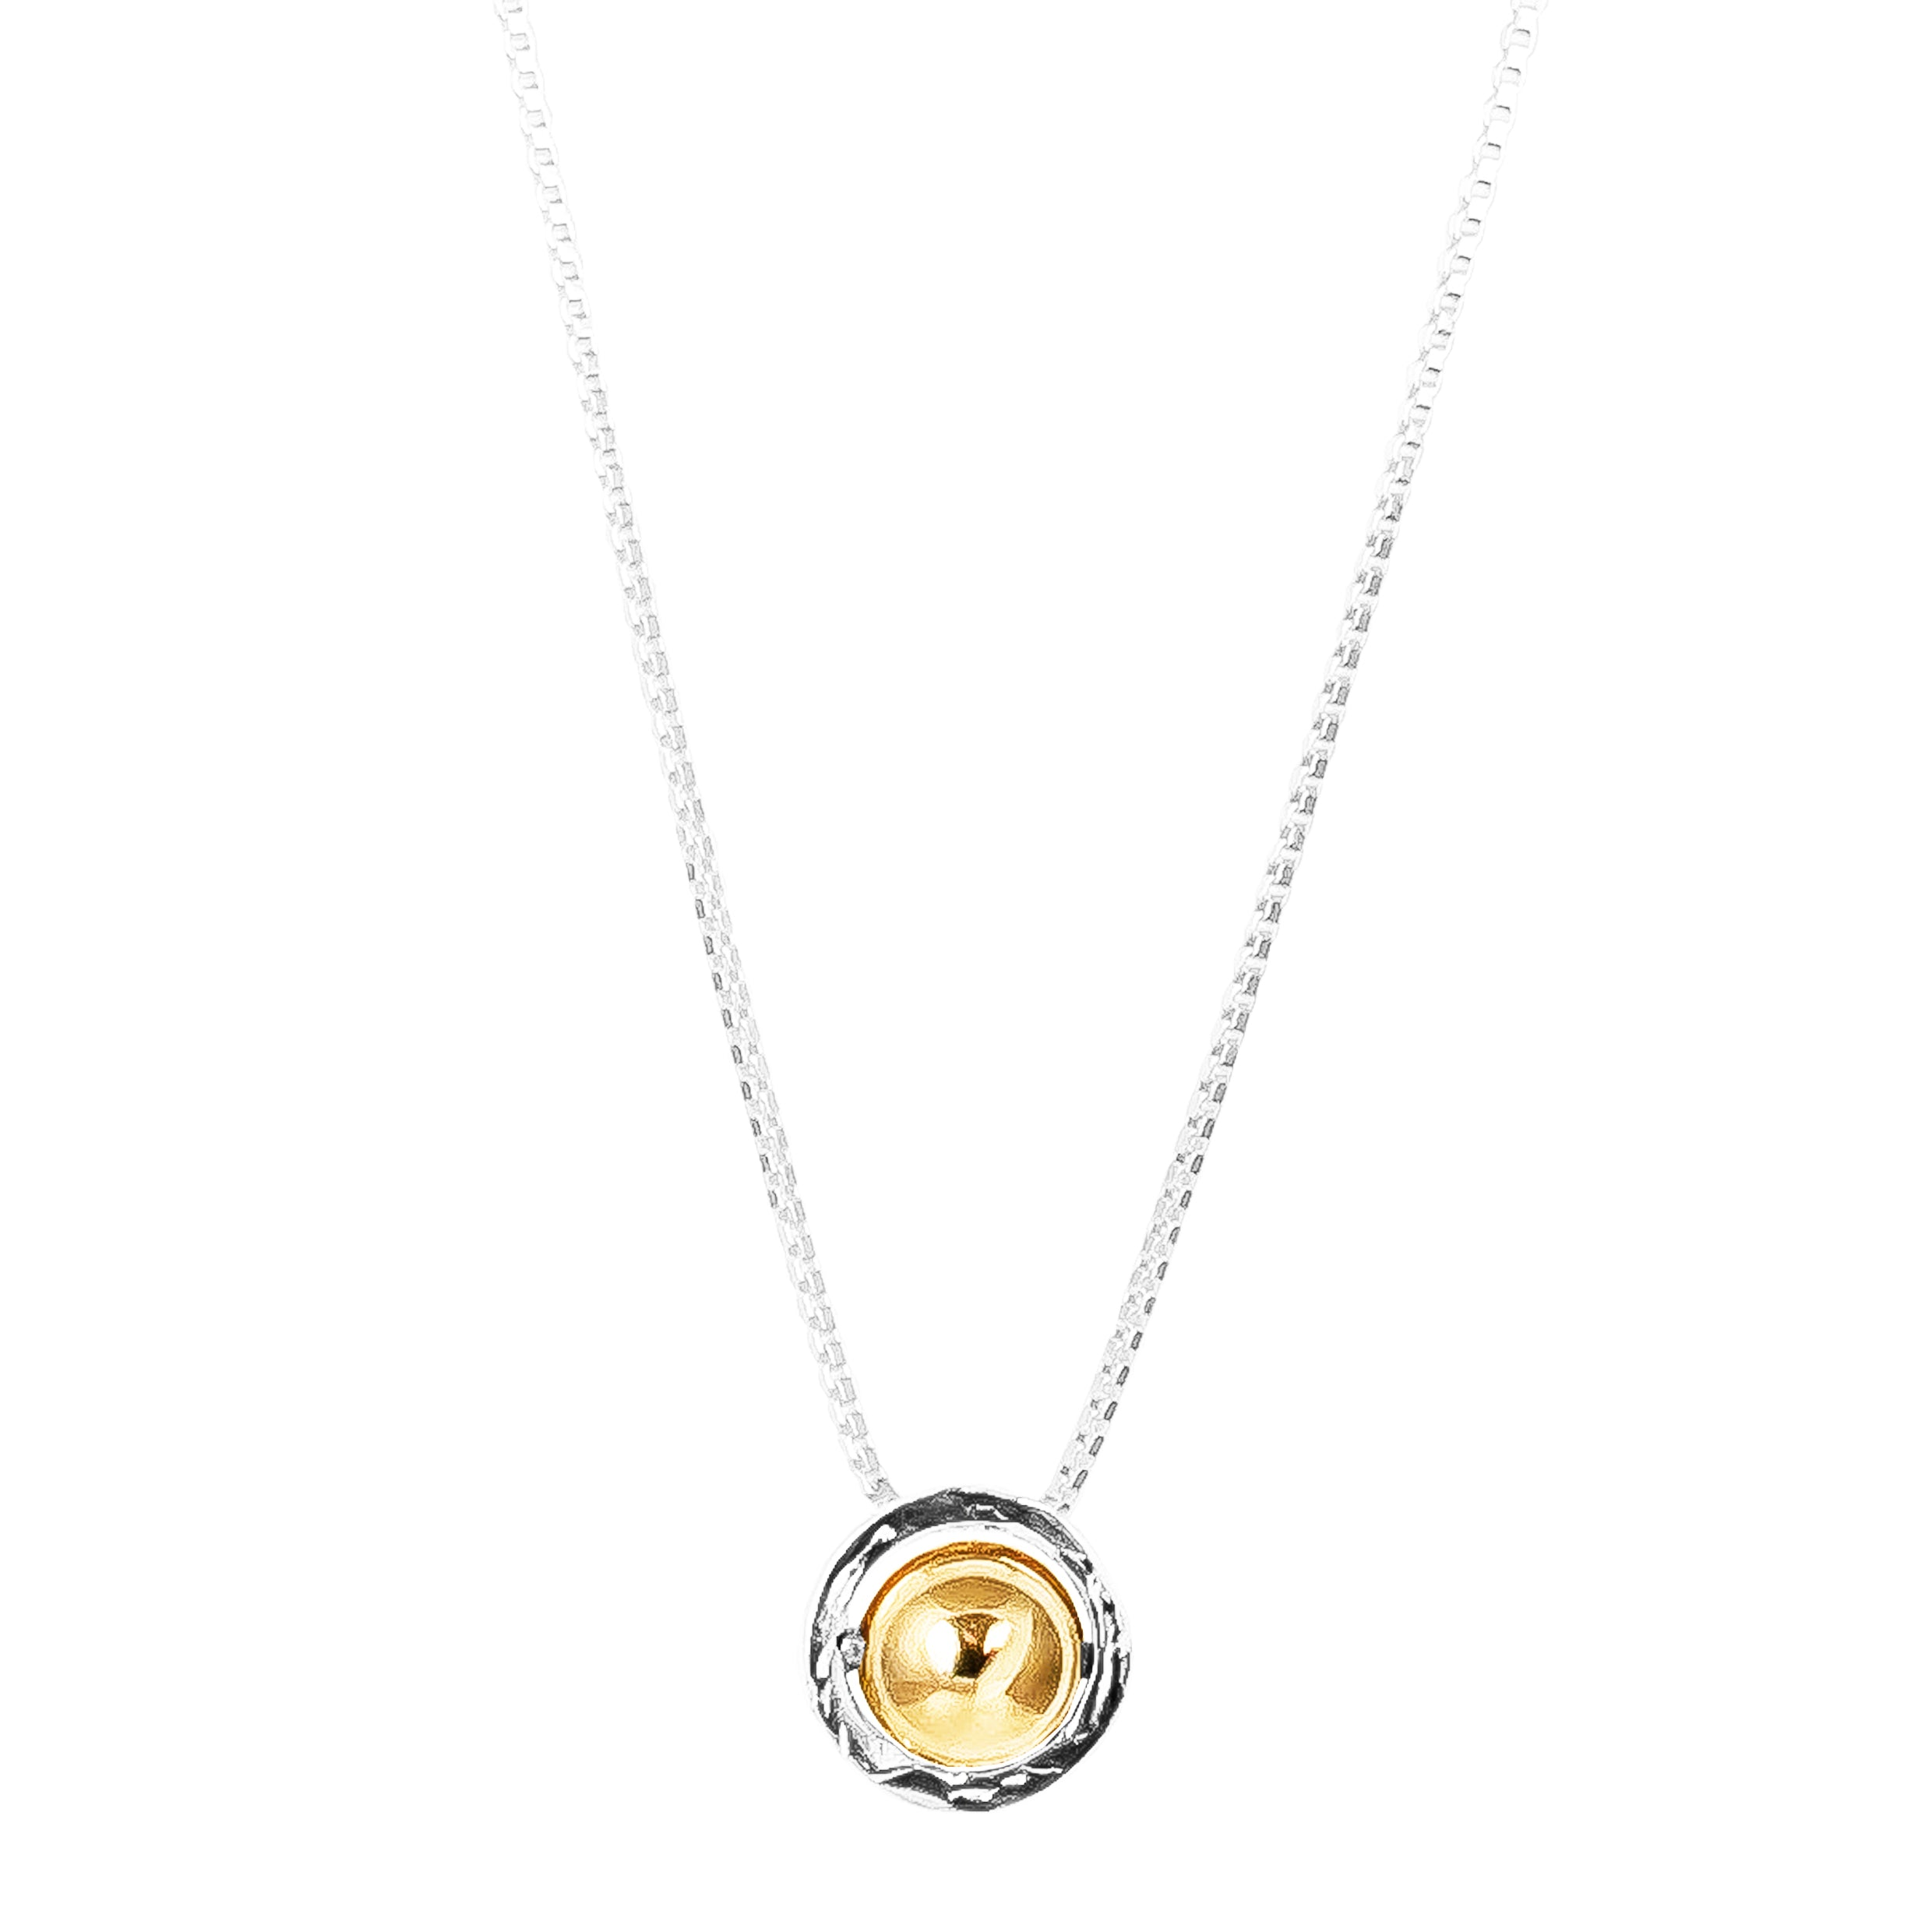 Atticus Large Charm Necklace With Box Chain - Long | Polished Gold Detail